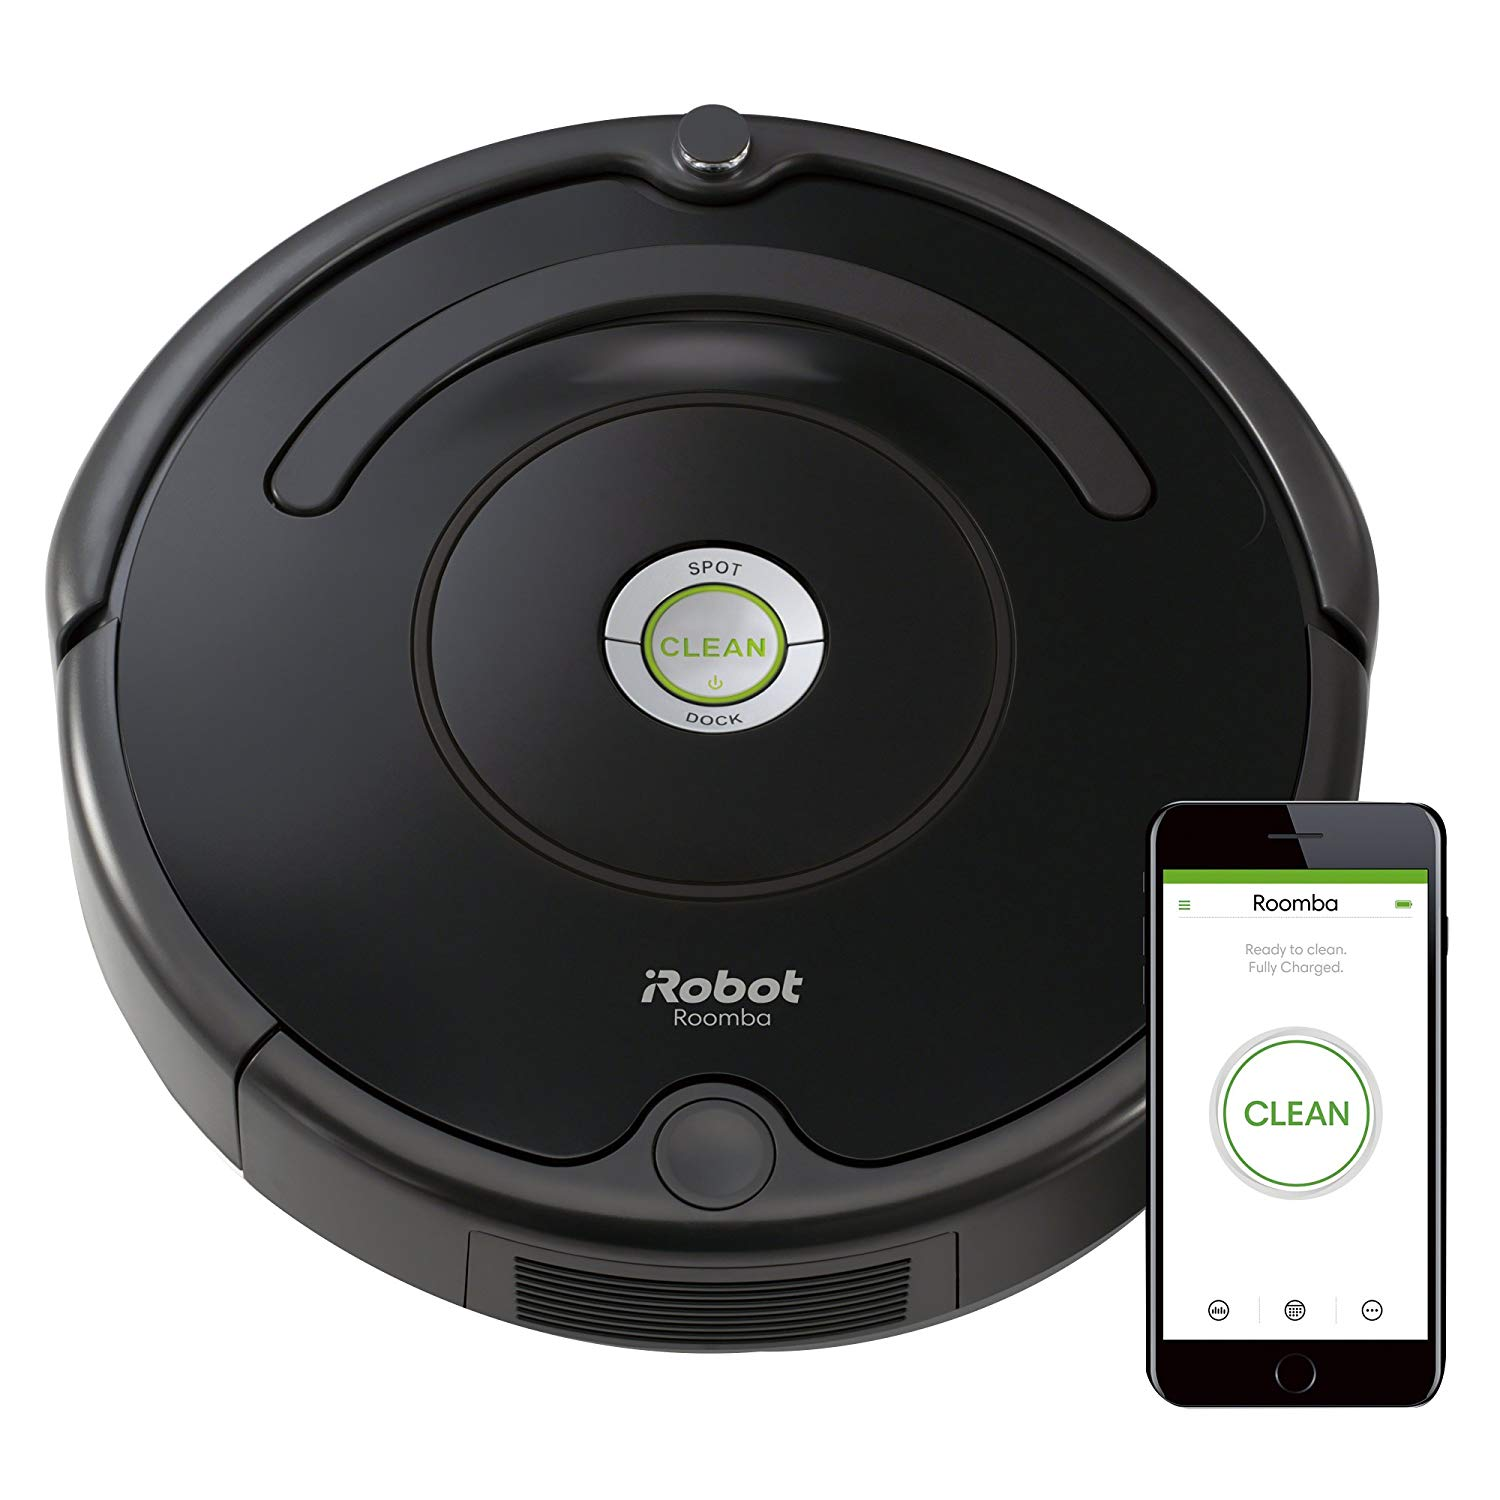 Irobot Roomba 671 Robot Vacuum Is 34 Percent Off For Prime Day